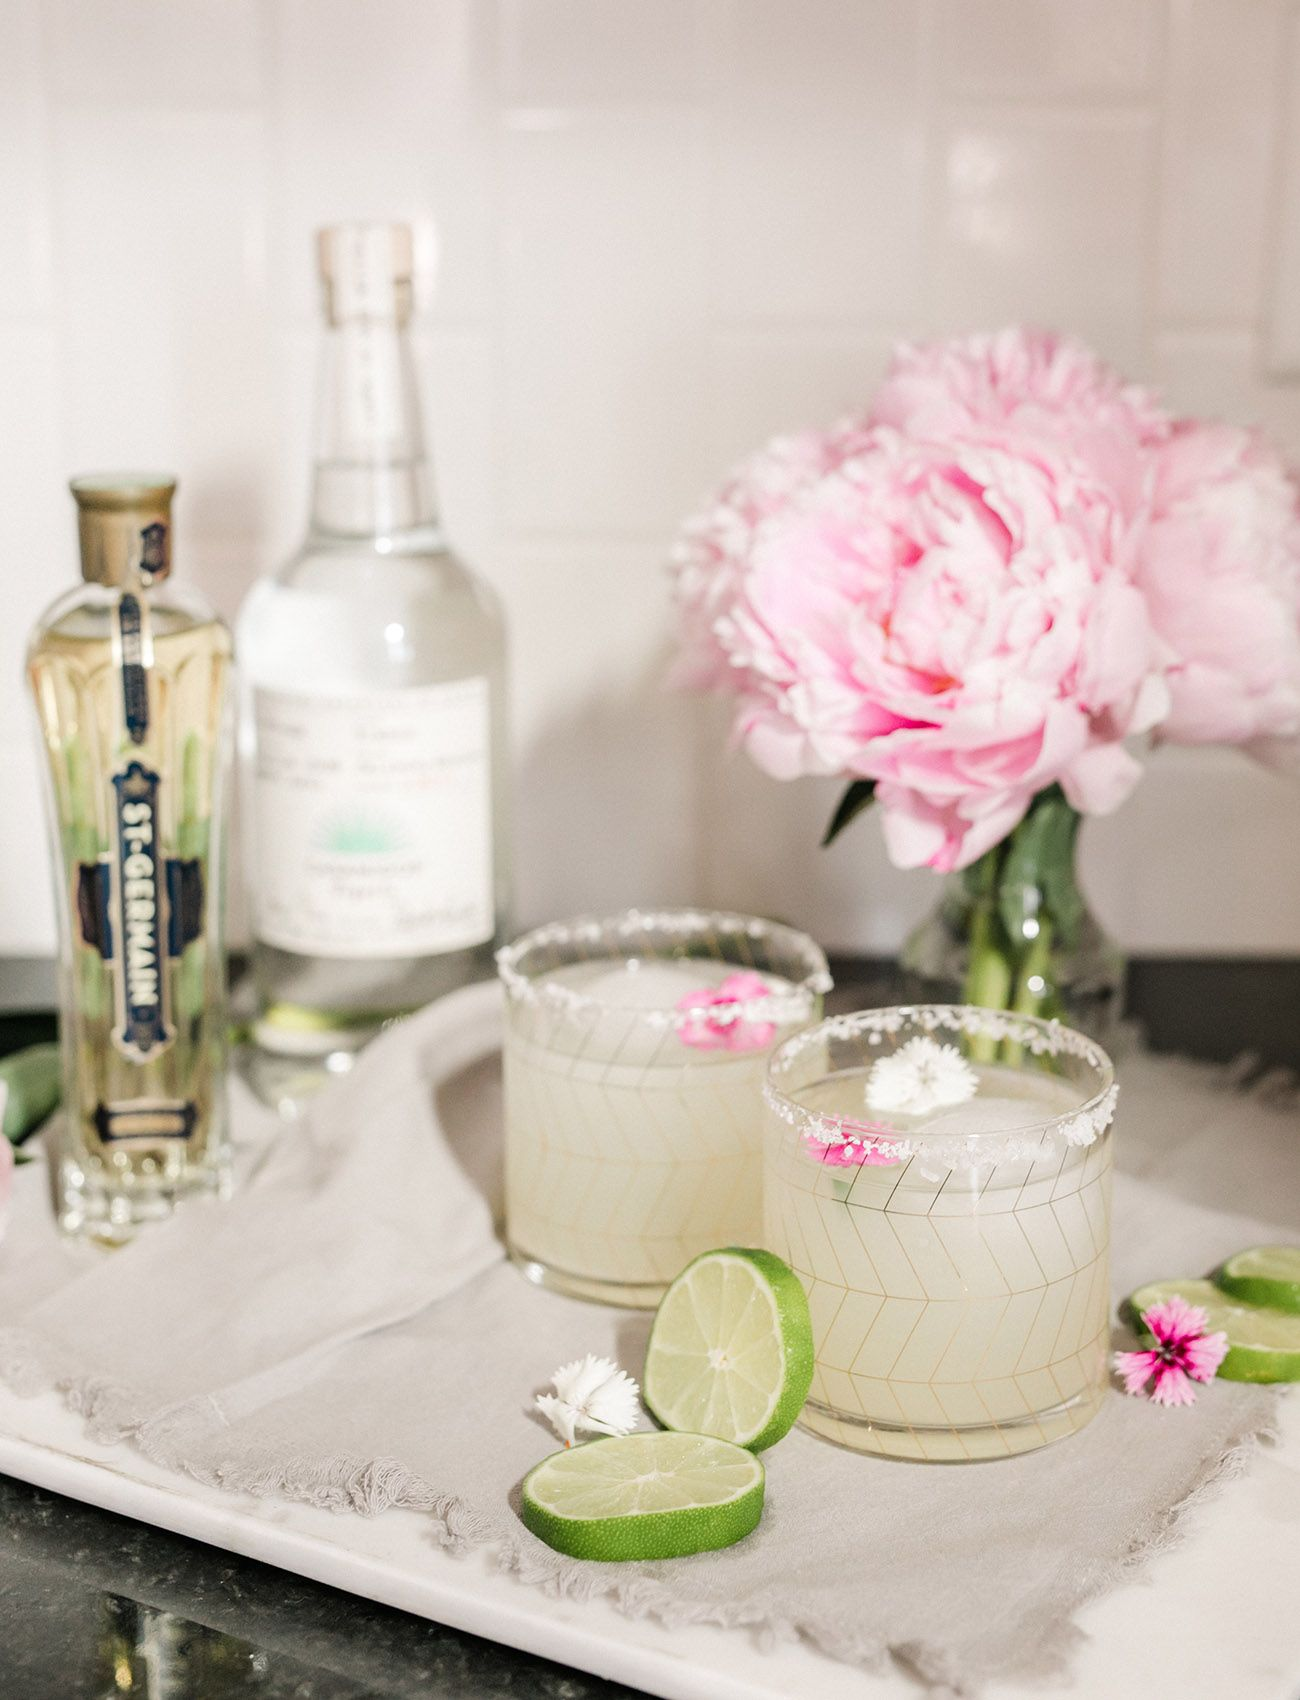 Spice Up Your Summer Cocktail How To Make A Danish Inspired